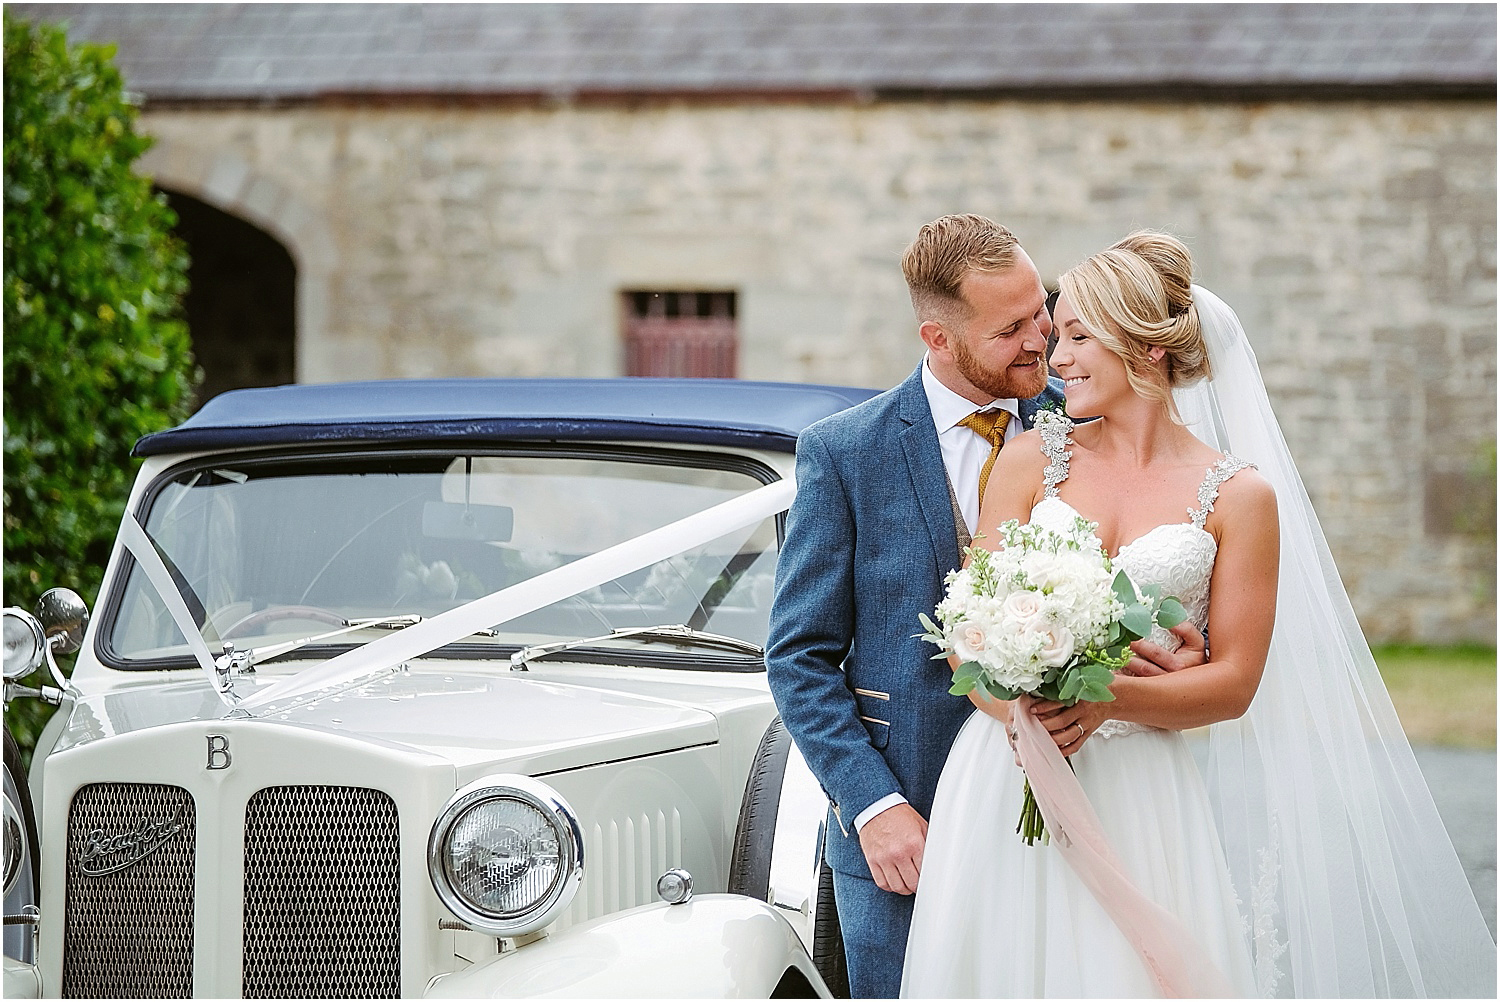 Wedding at Healey Barn - wedding photography by www.2tonephotography.co.uk 053.jpg